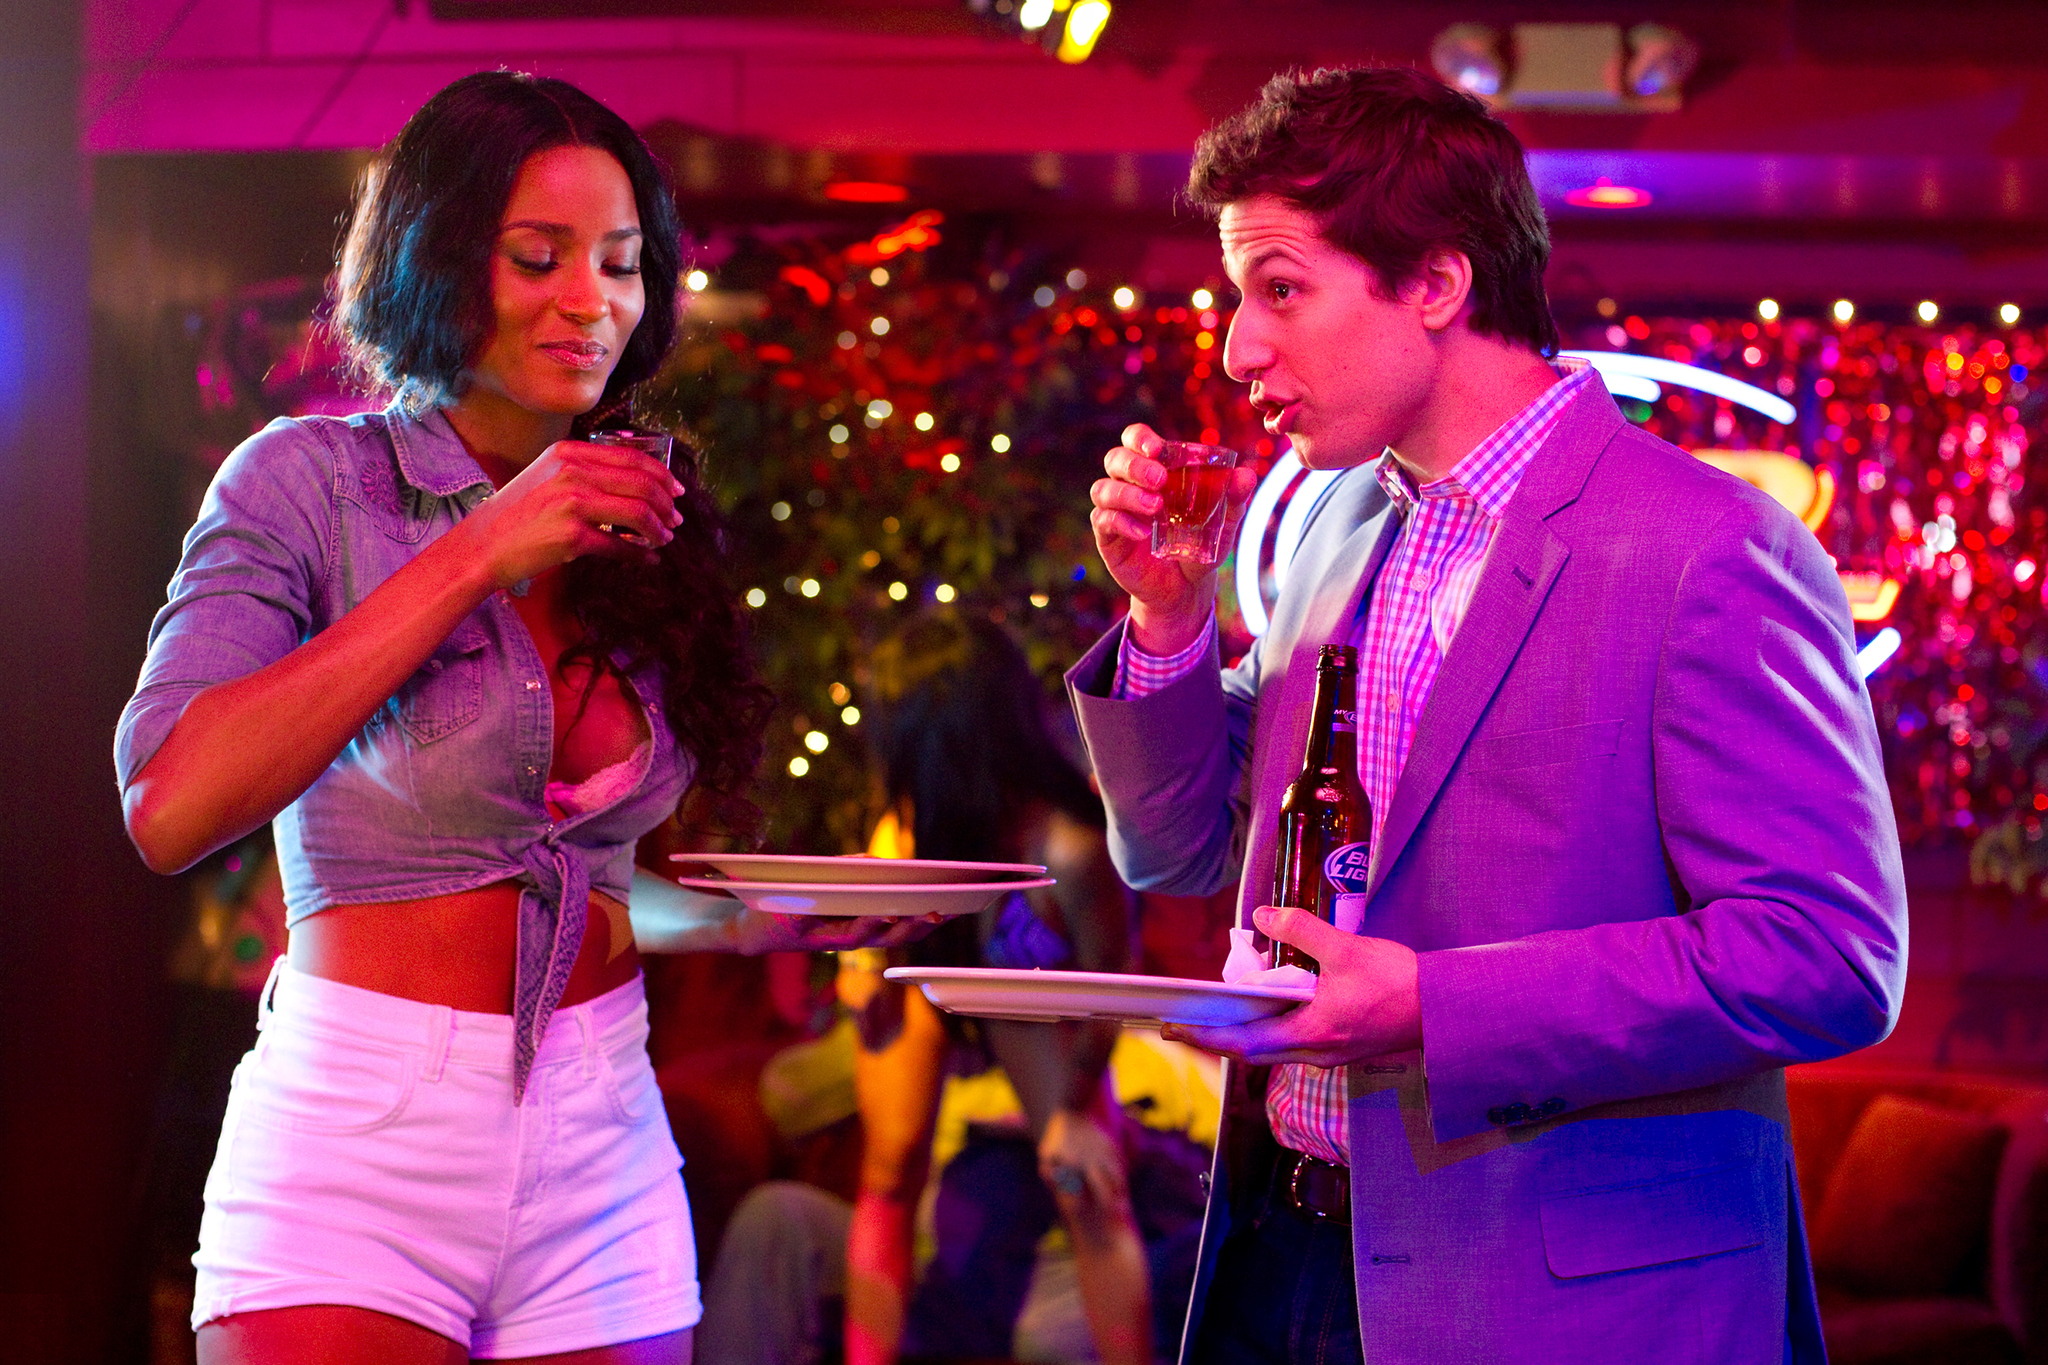 Andy Samberg and Ciara in That's My Boy (2012)